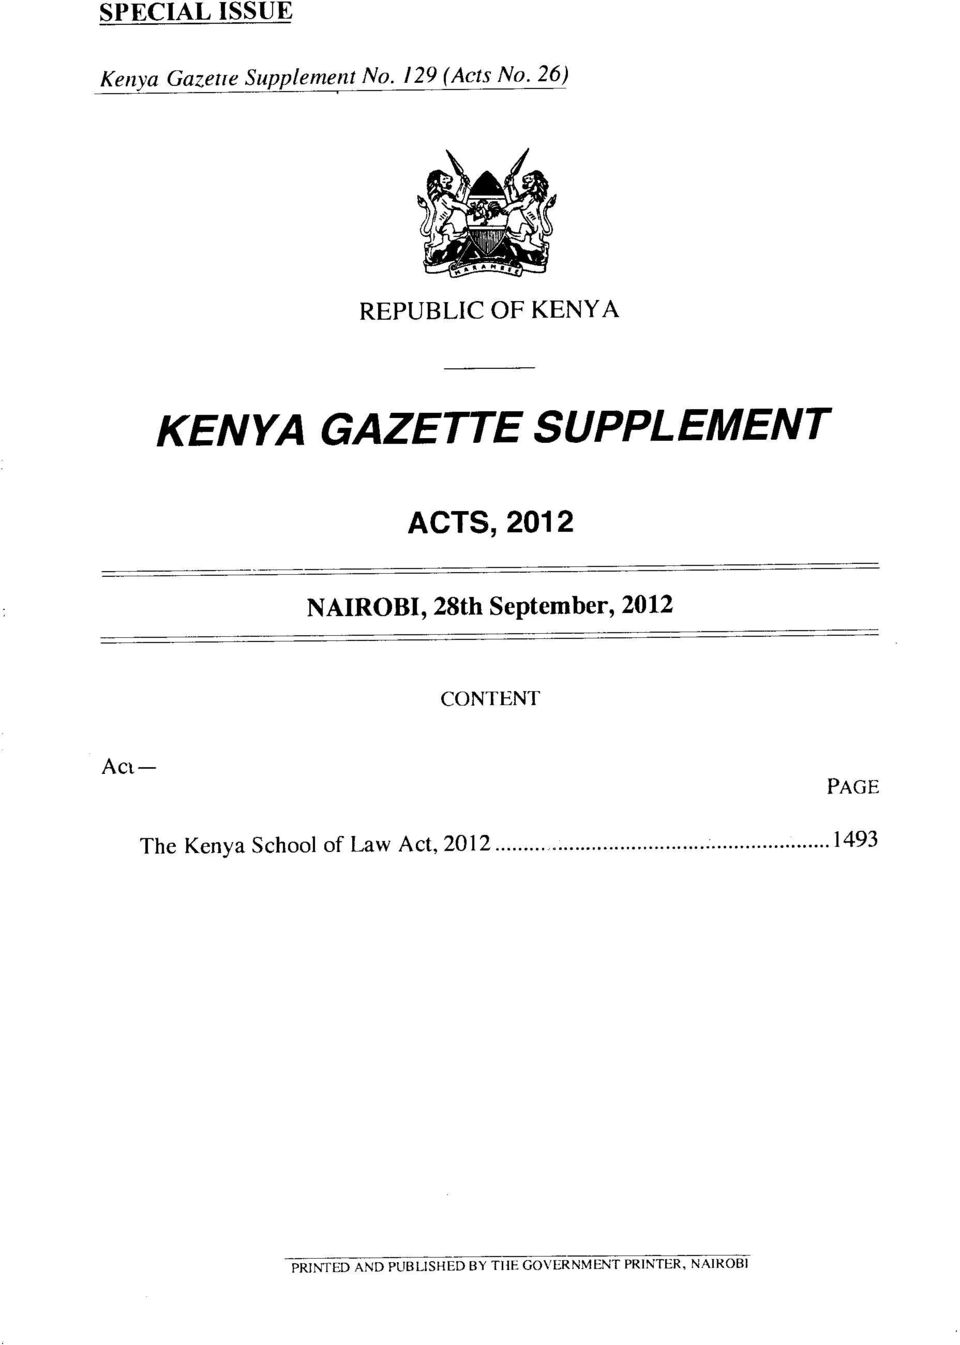 NAIROBI, 28th September, 2012 CONTENT Act PAGE The Kenya School